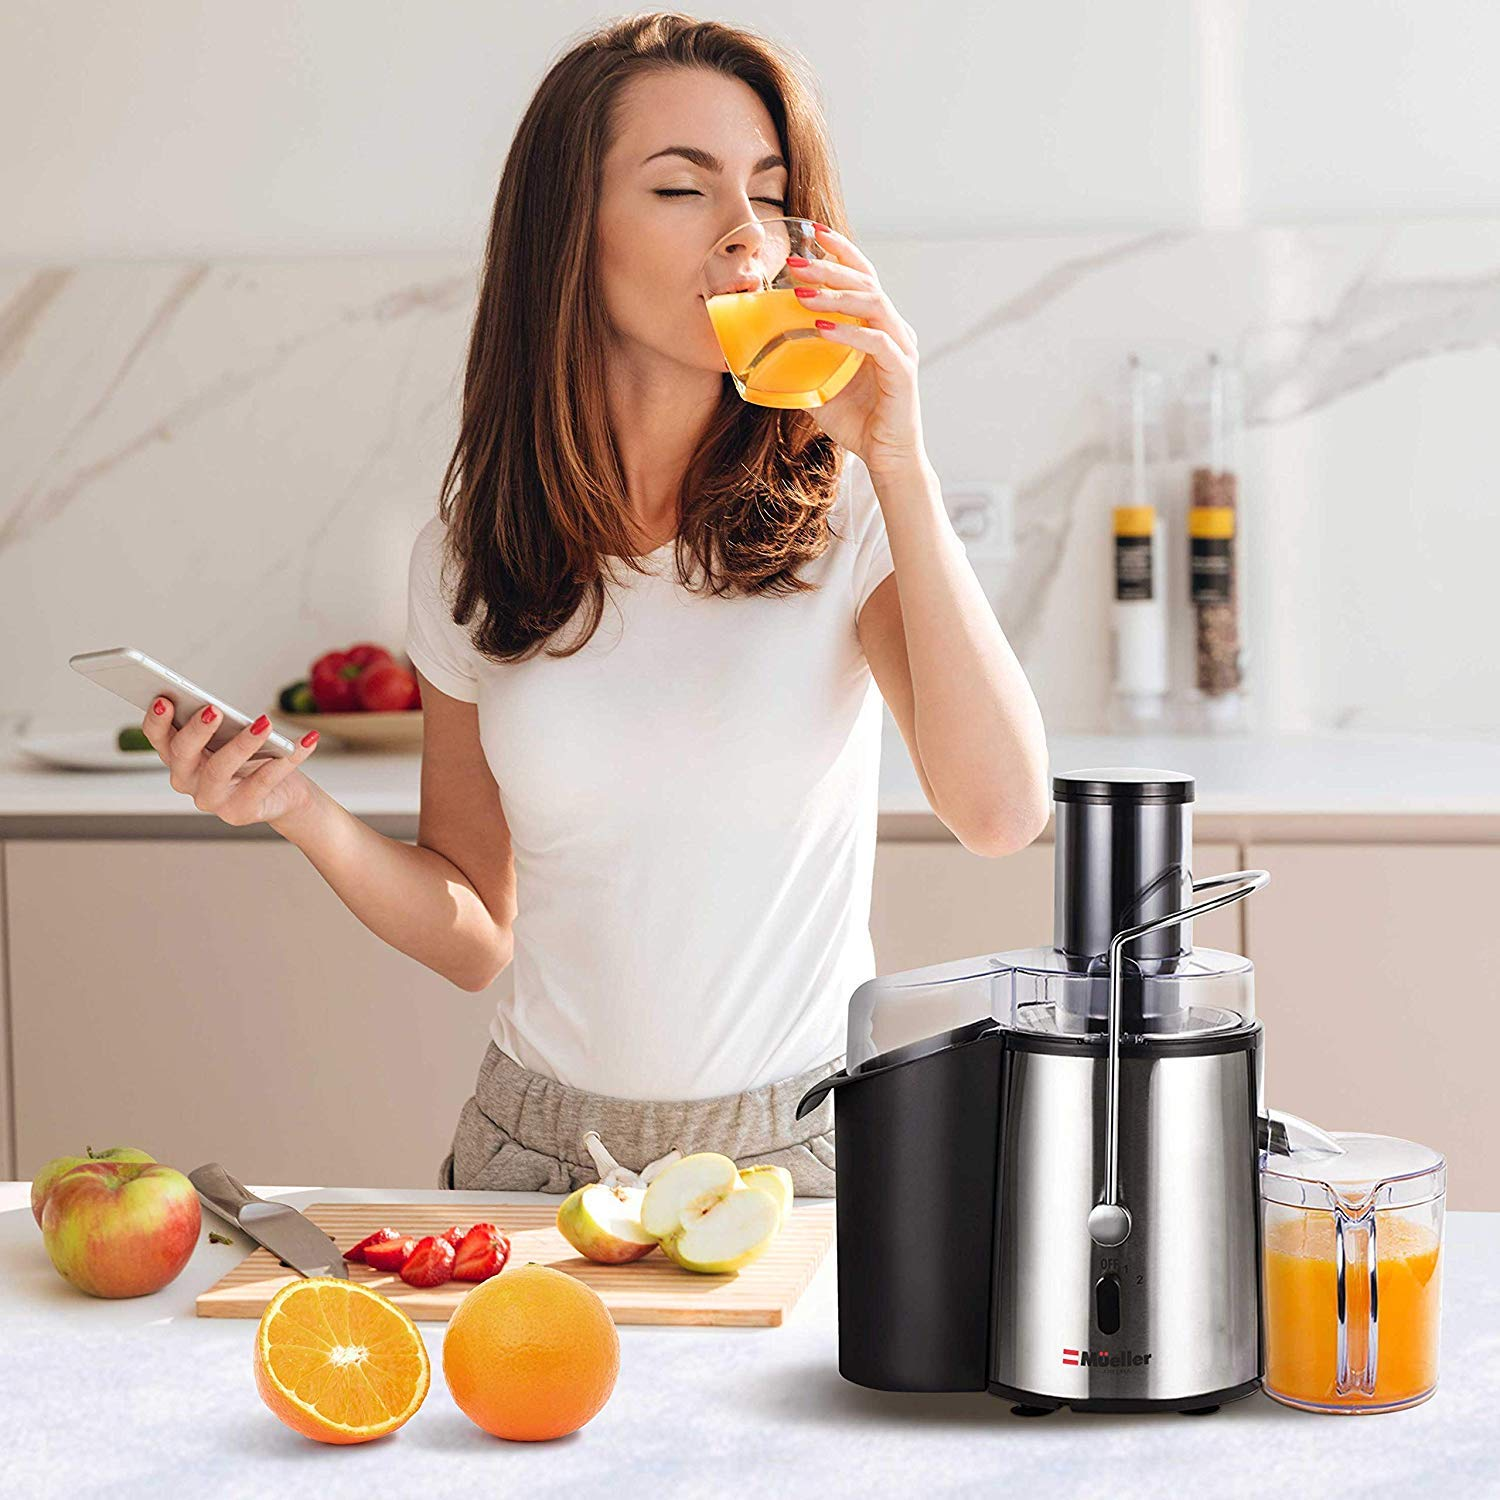 Juicer Ultra 1100W Power, Easy Clean Extractor Press Centrifugal Juicing Machine